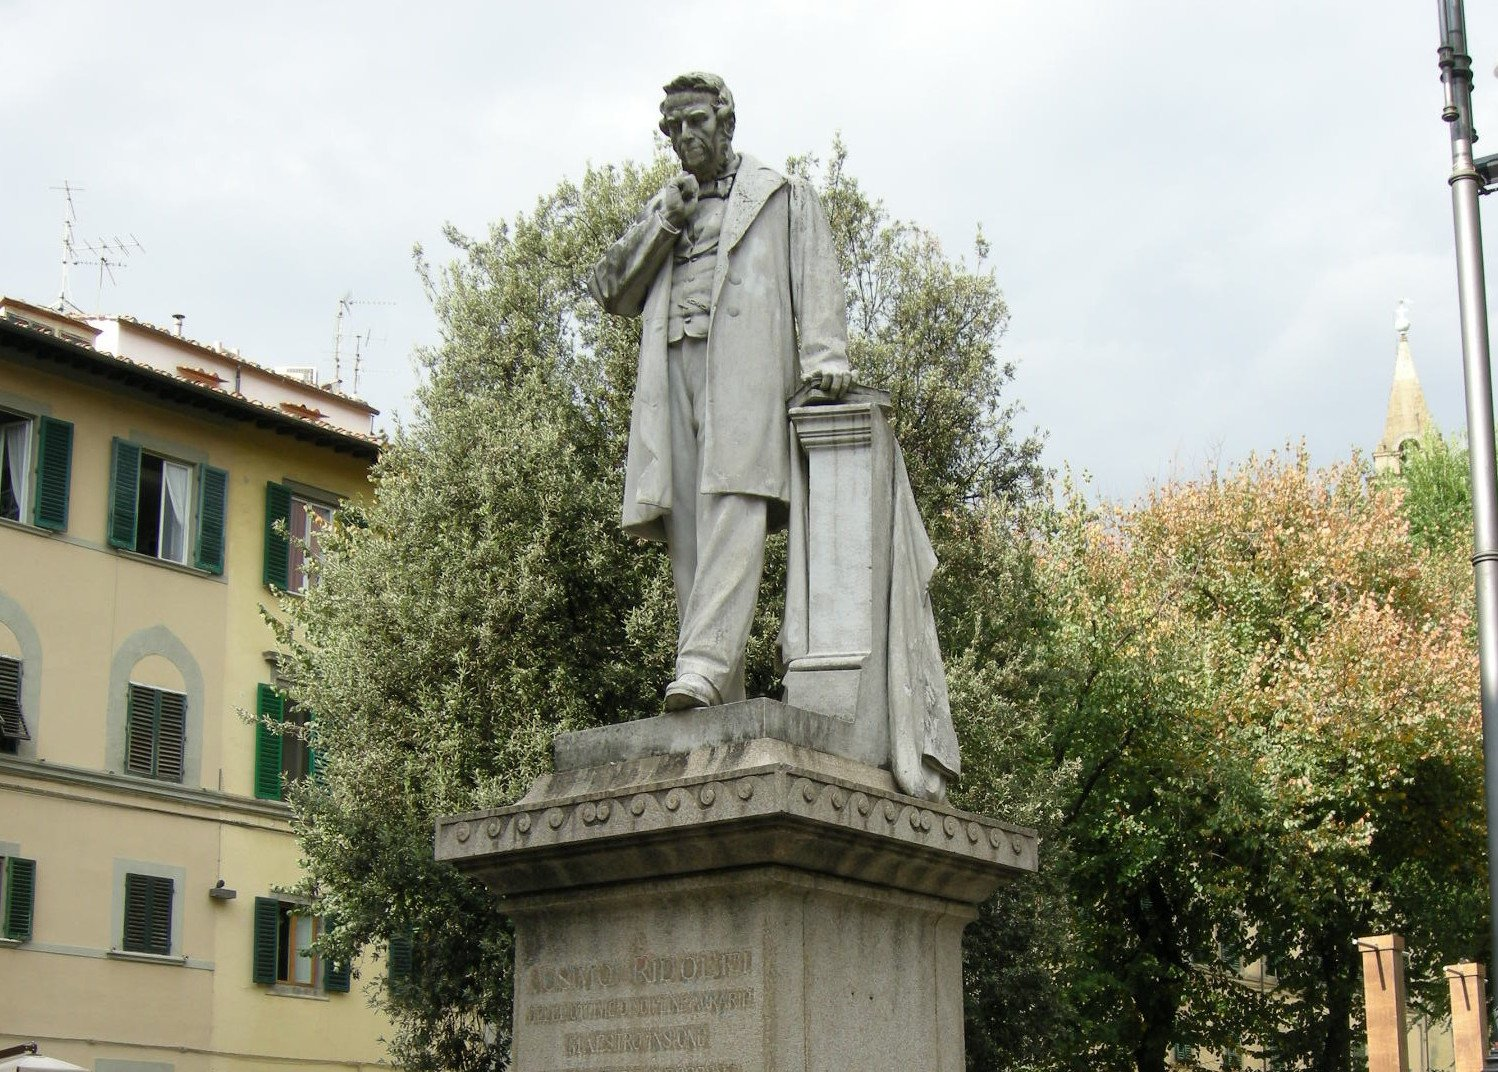 Cosimo Ridolfi and the history of agronomy